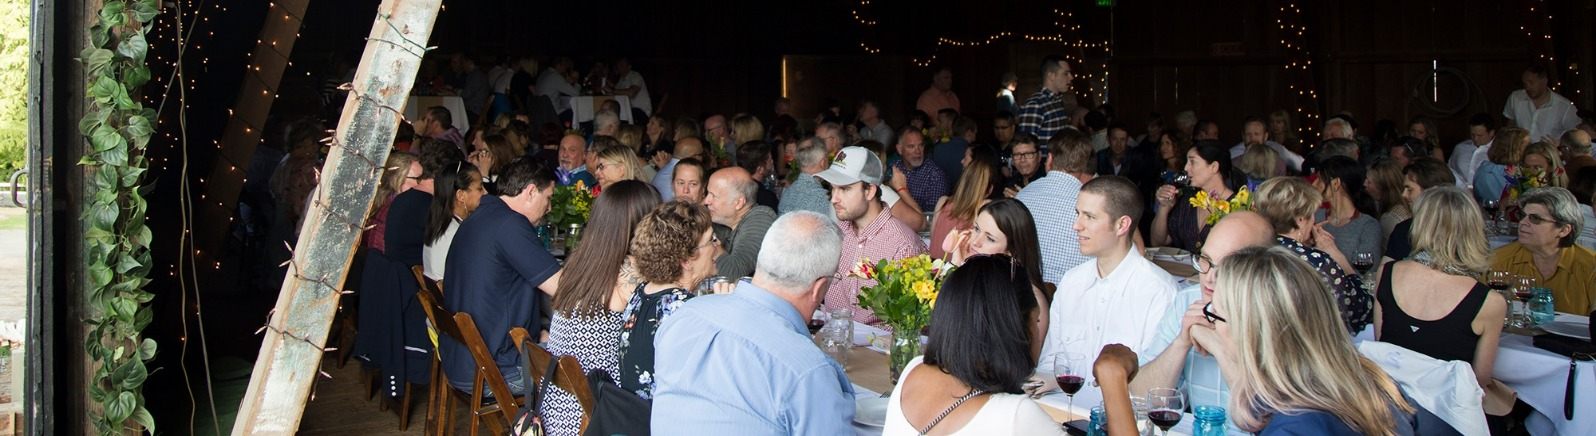 Field and Vine Dinner Barn Kestrel courtesy Field and Vine Events